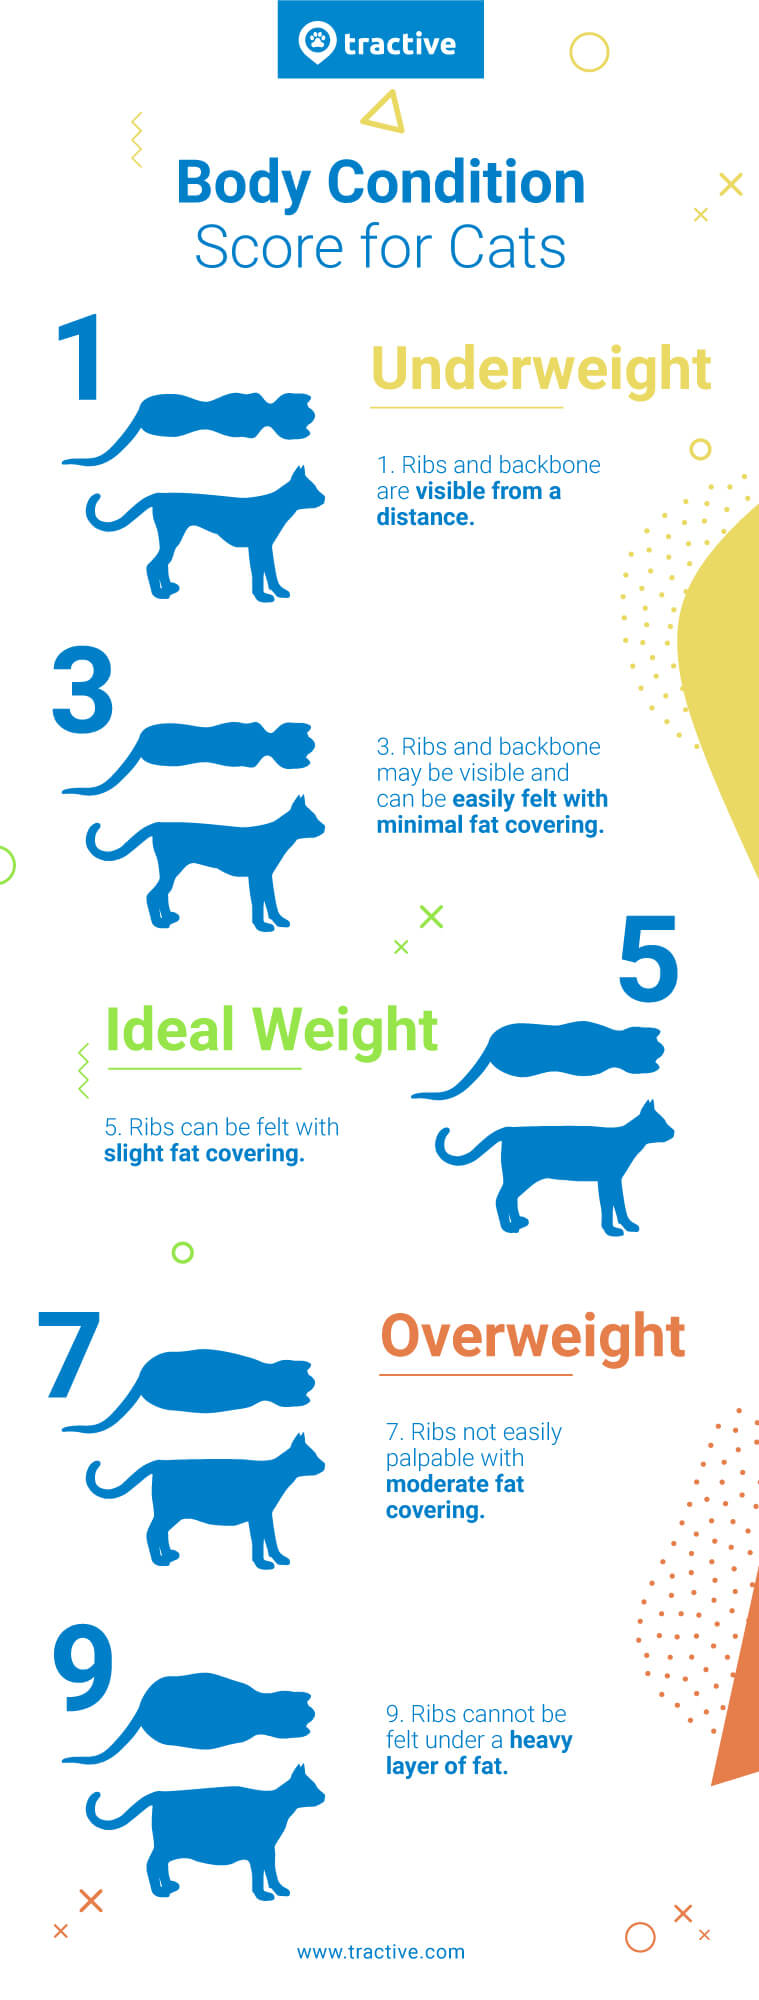 Cat Body Condition Score - Overweight Cats